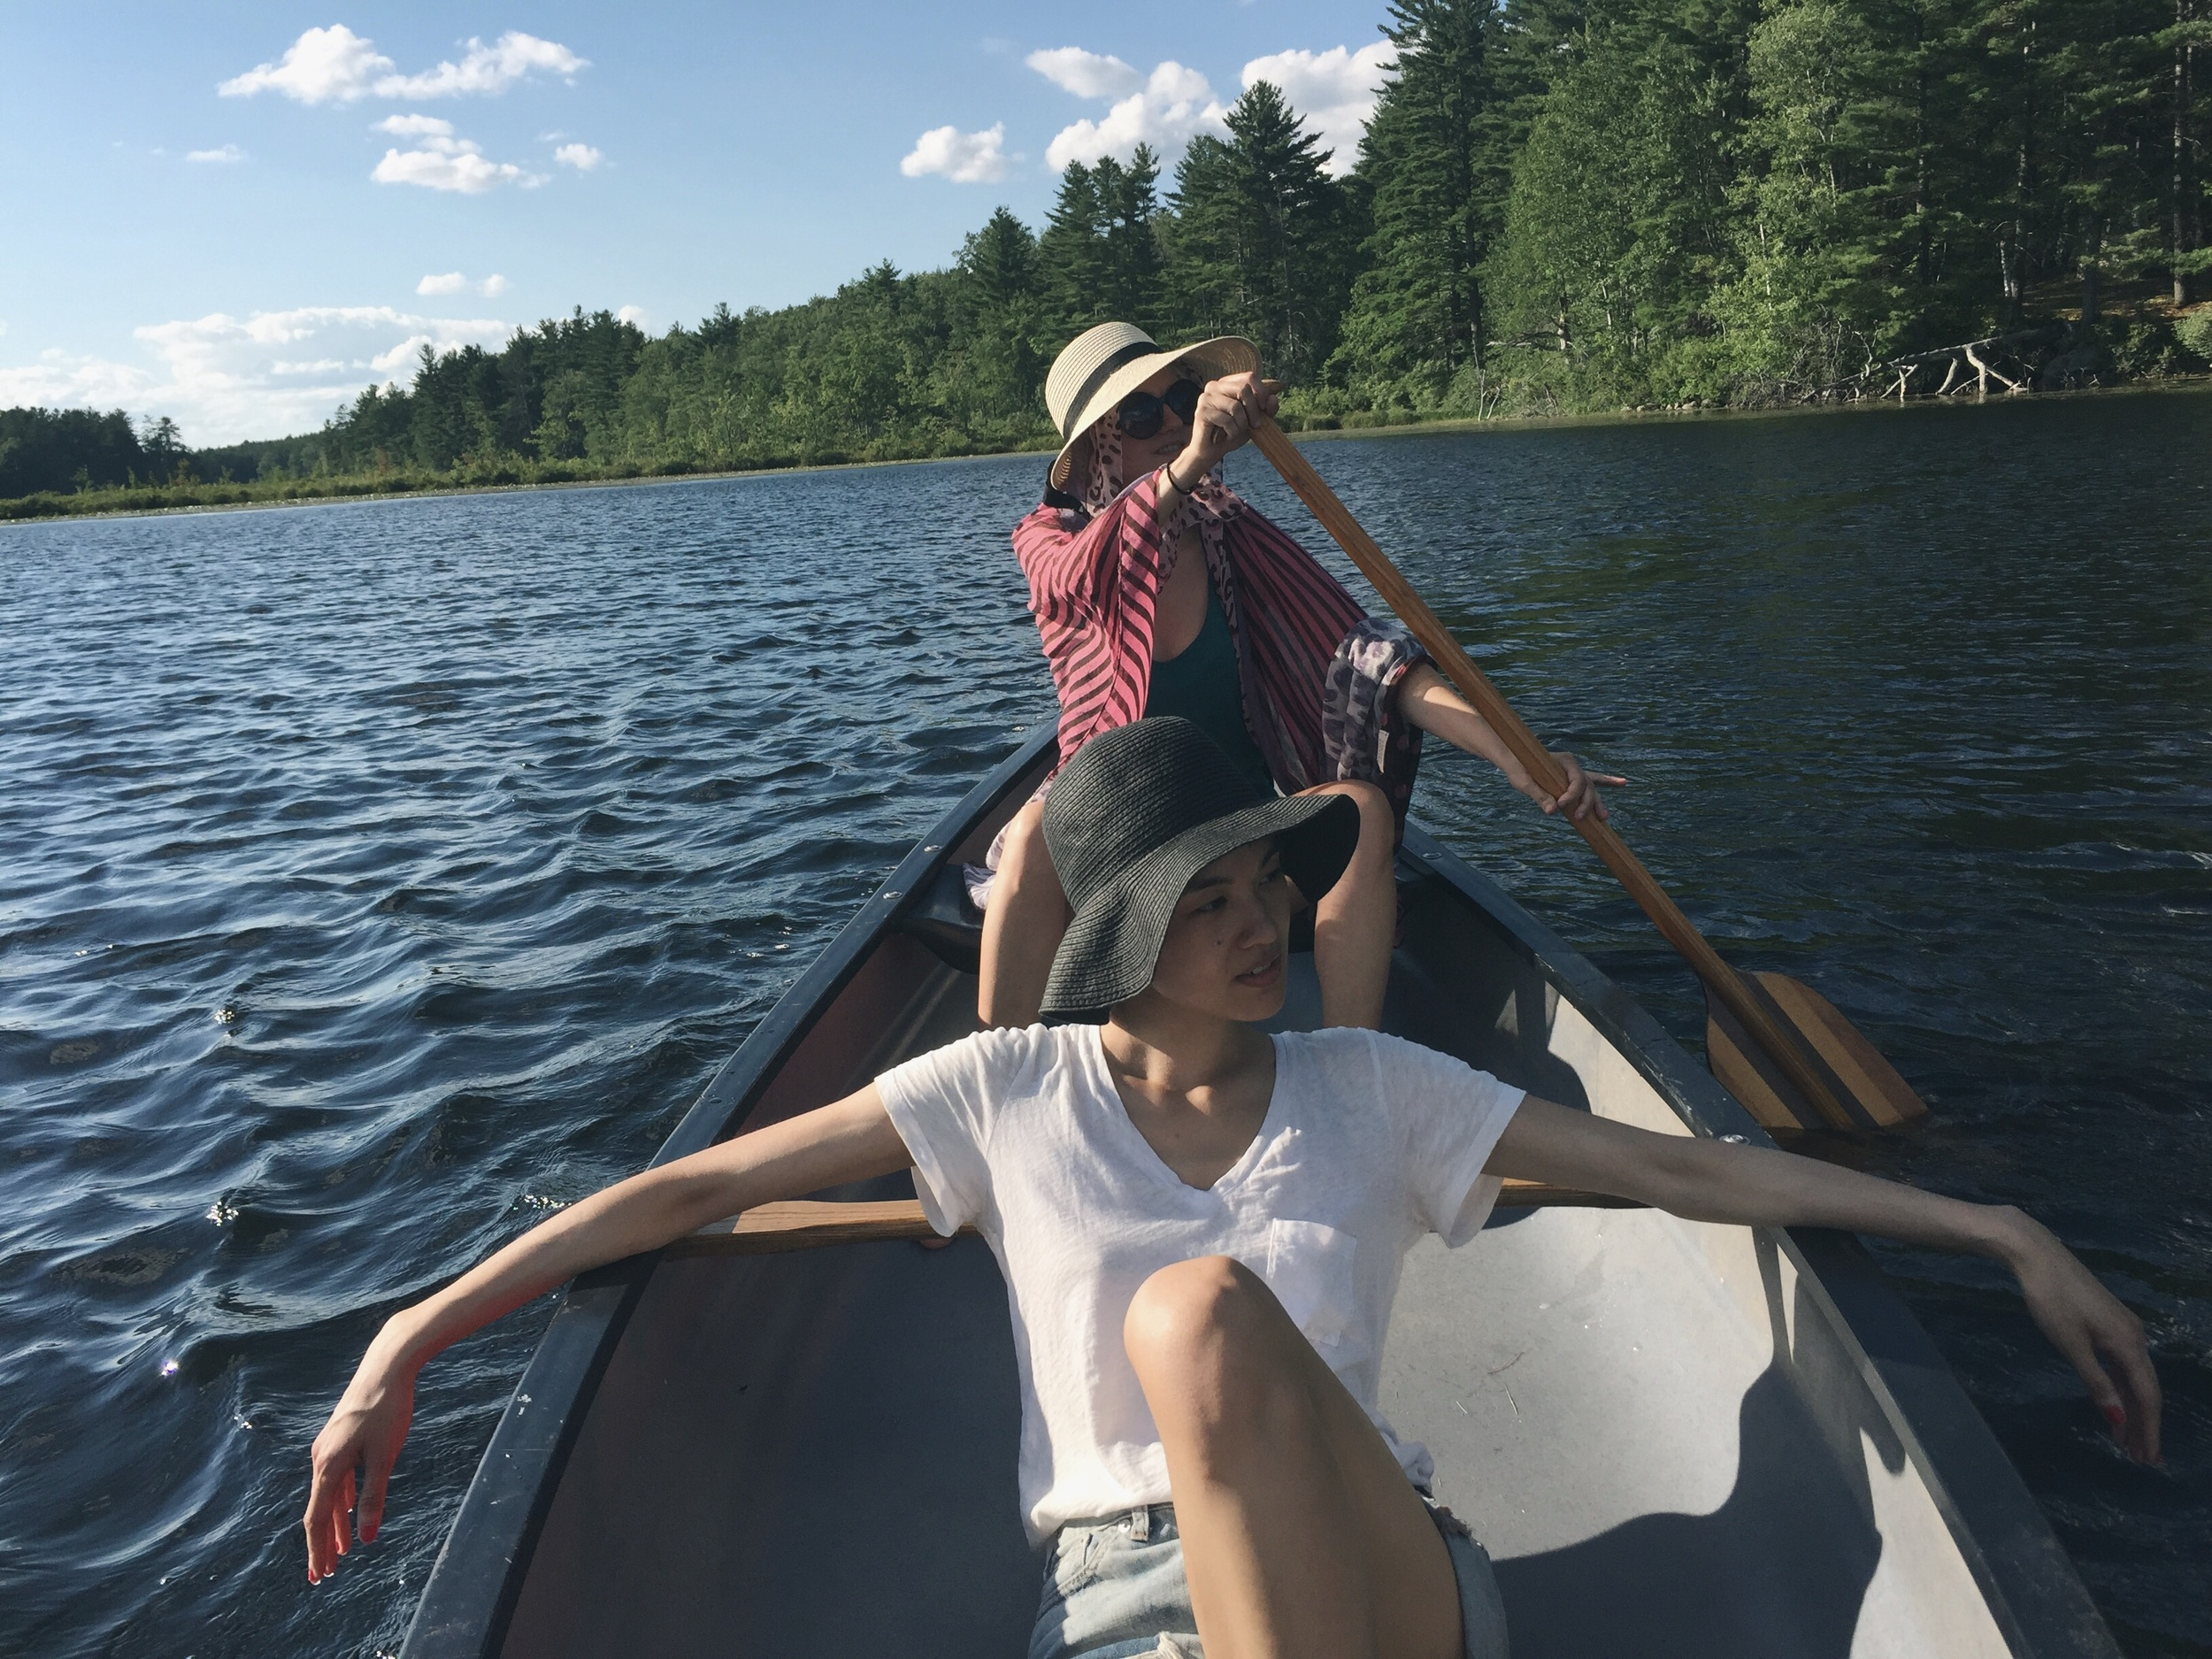 Canoeing was a key activity for us